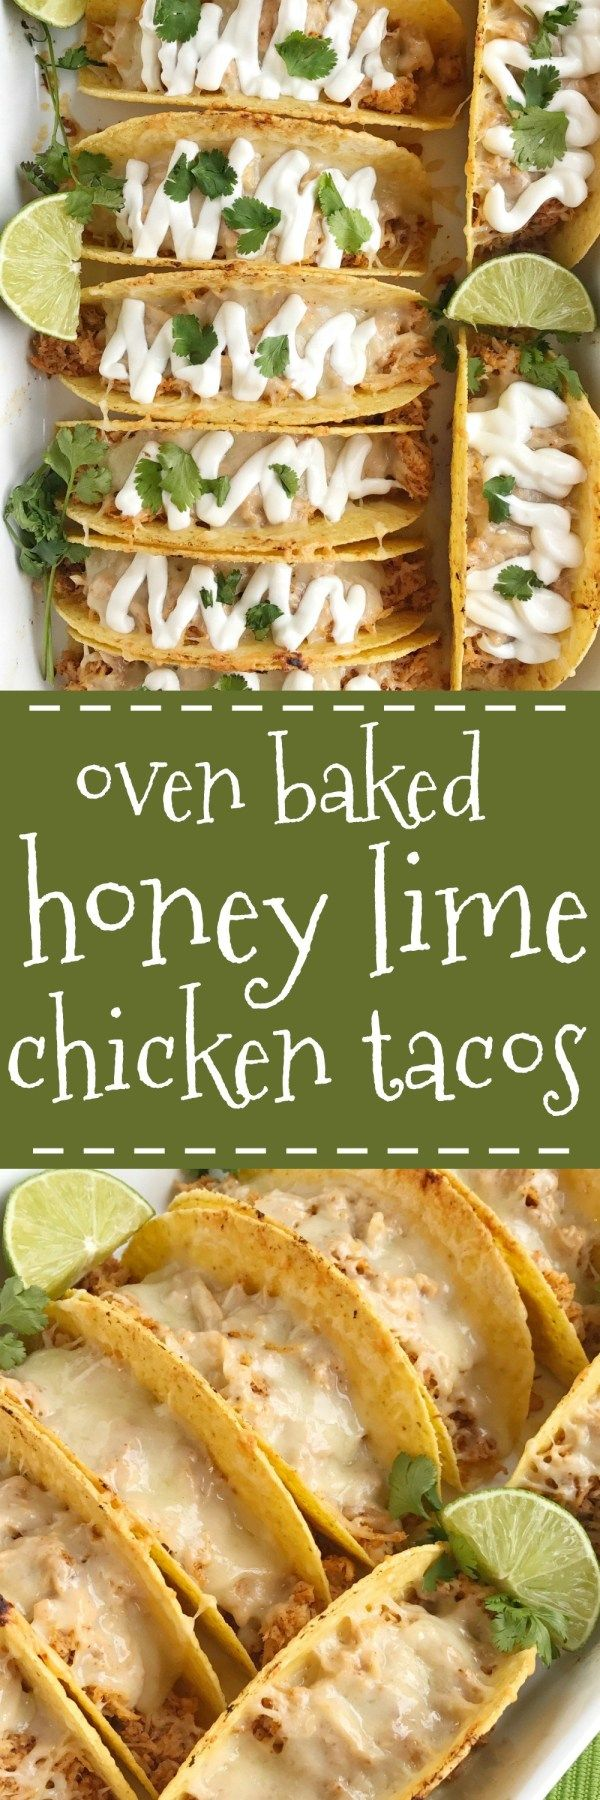 Switch up taco night with these oven baked honey lime chicken tacos. Shredded chicken seasoned with a honey lime mixture and baked in corn taco shells. Load up on the cheese for a crispy taco with gooey cheese and serve with your favorite taco toppings. Dinner can be on the table in 30 minutes with this one and it's always a favorite. #honeylimechicken